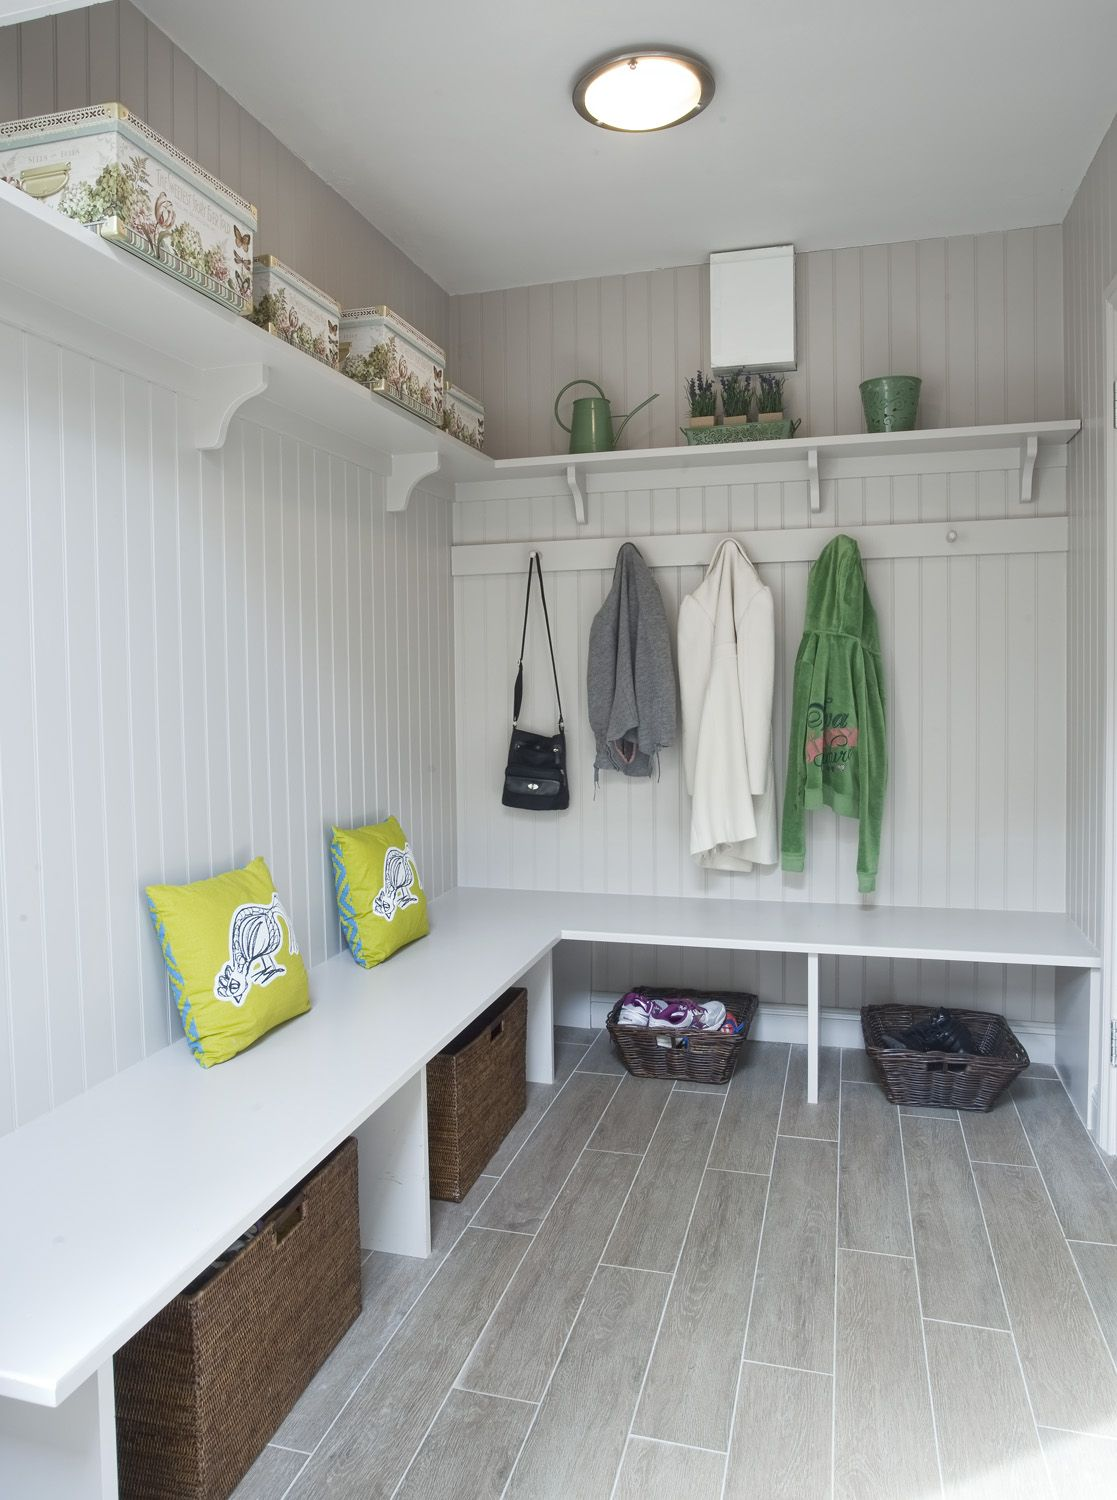 House design newcastle - Bootroom And Laundry Furniture Newcastle Design